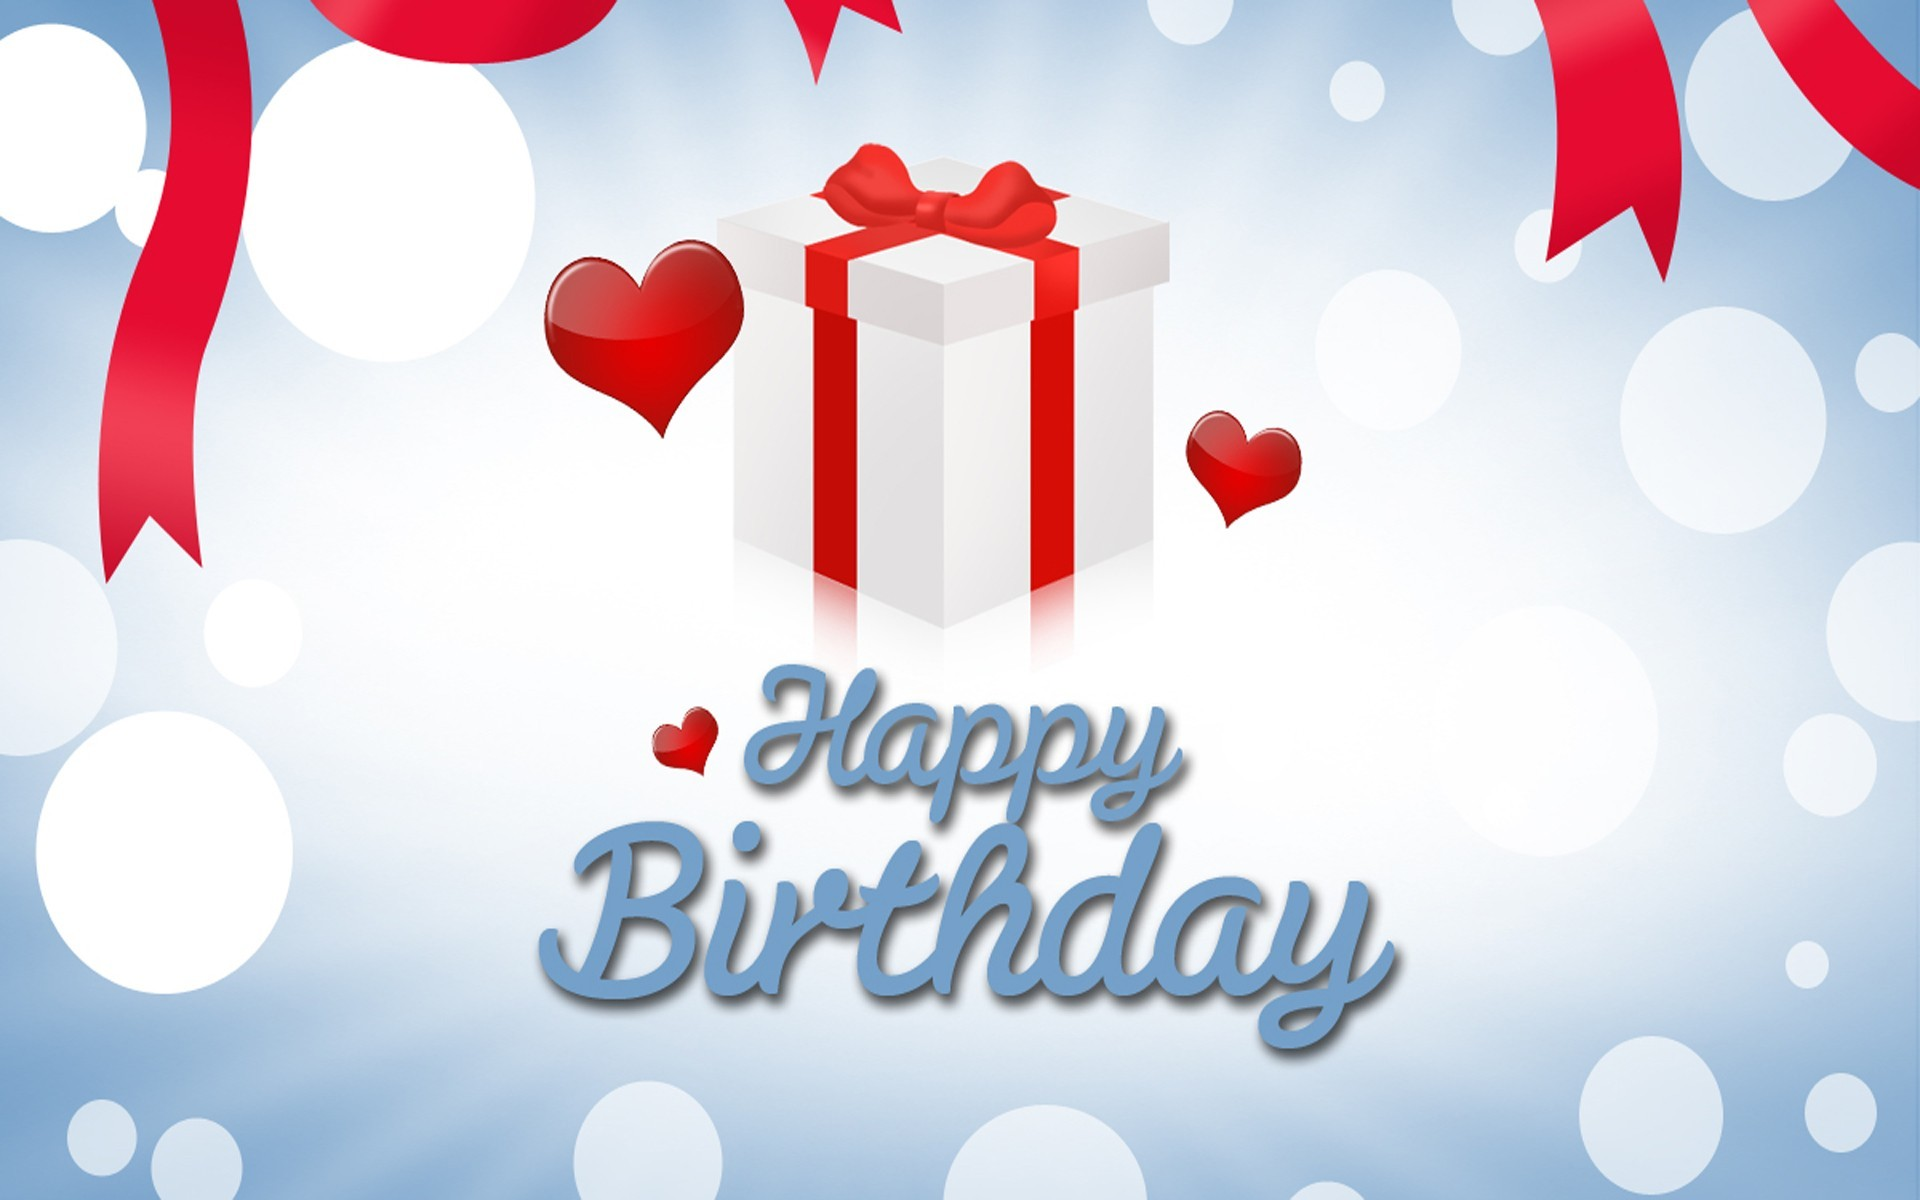 birthday wishes hd images free download ; 282424